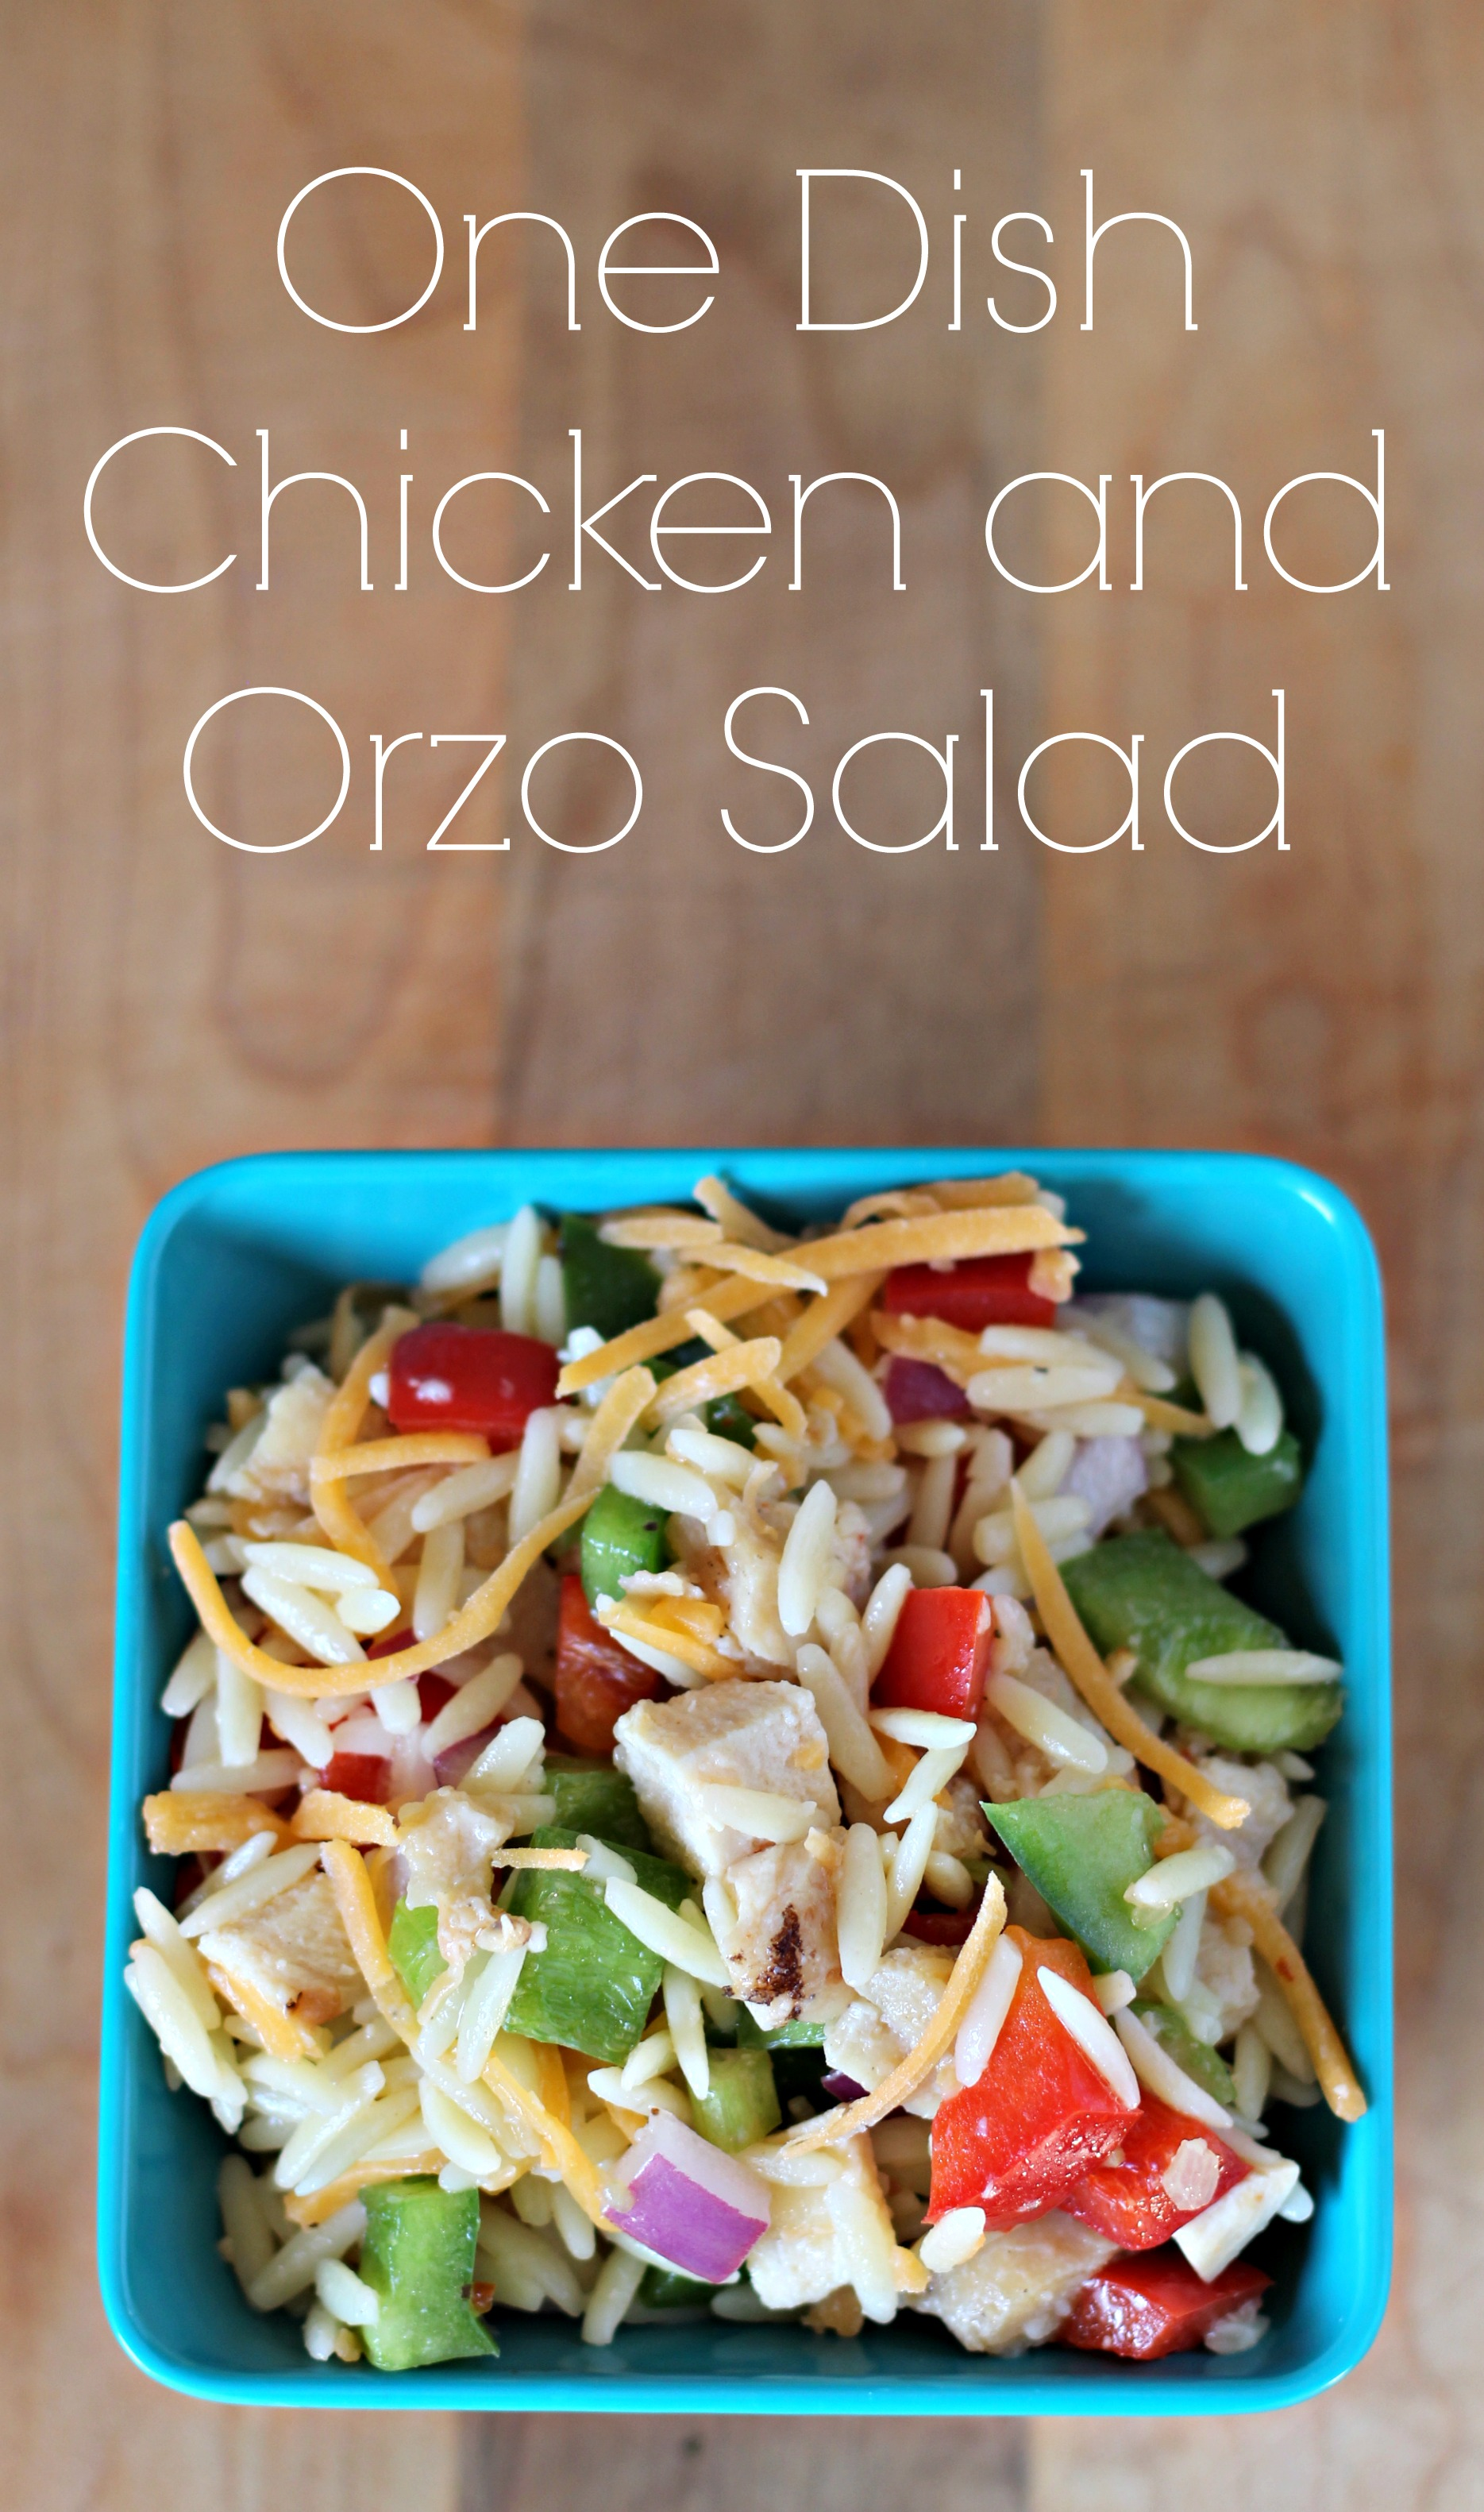 [ad] One Dish Chicken and Orzo Salad